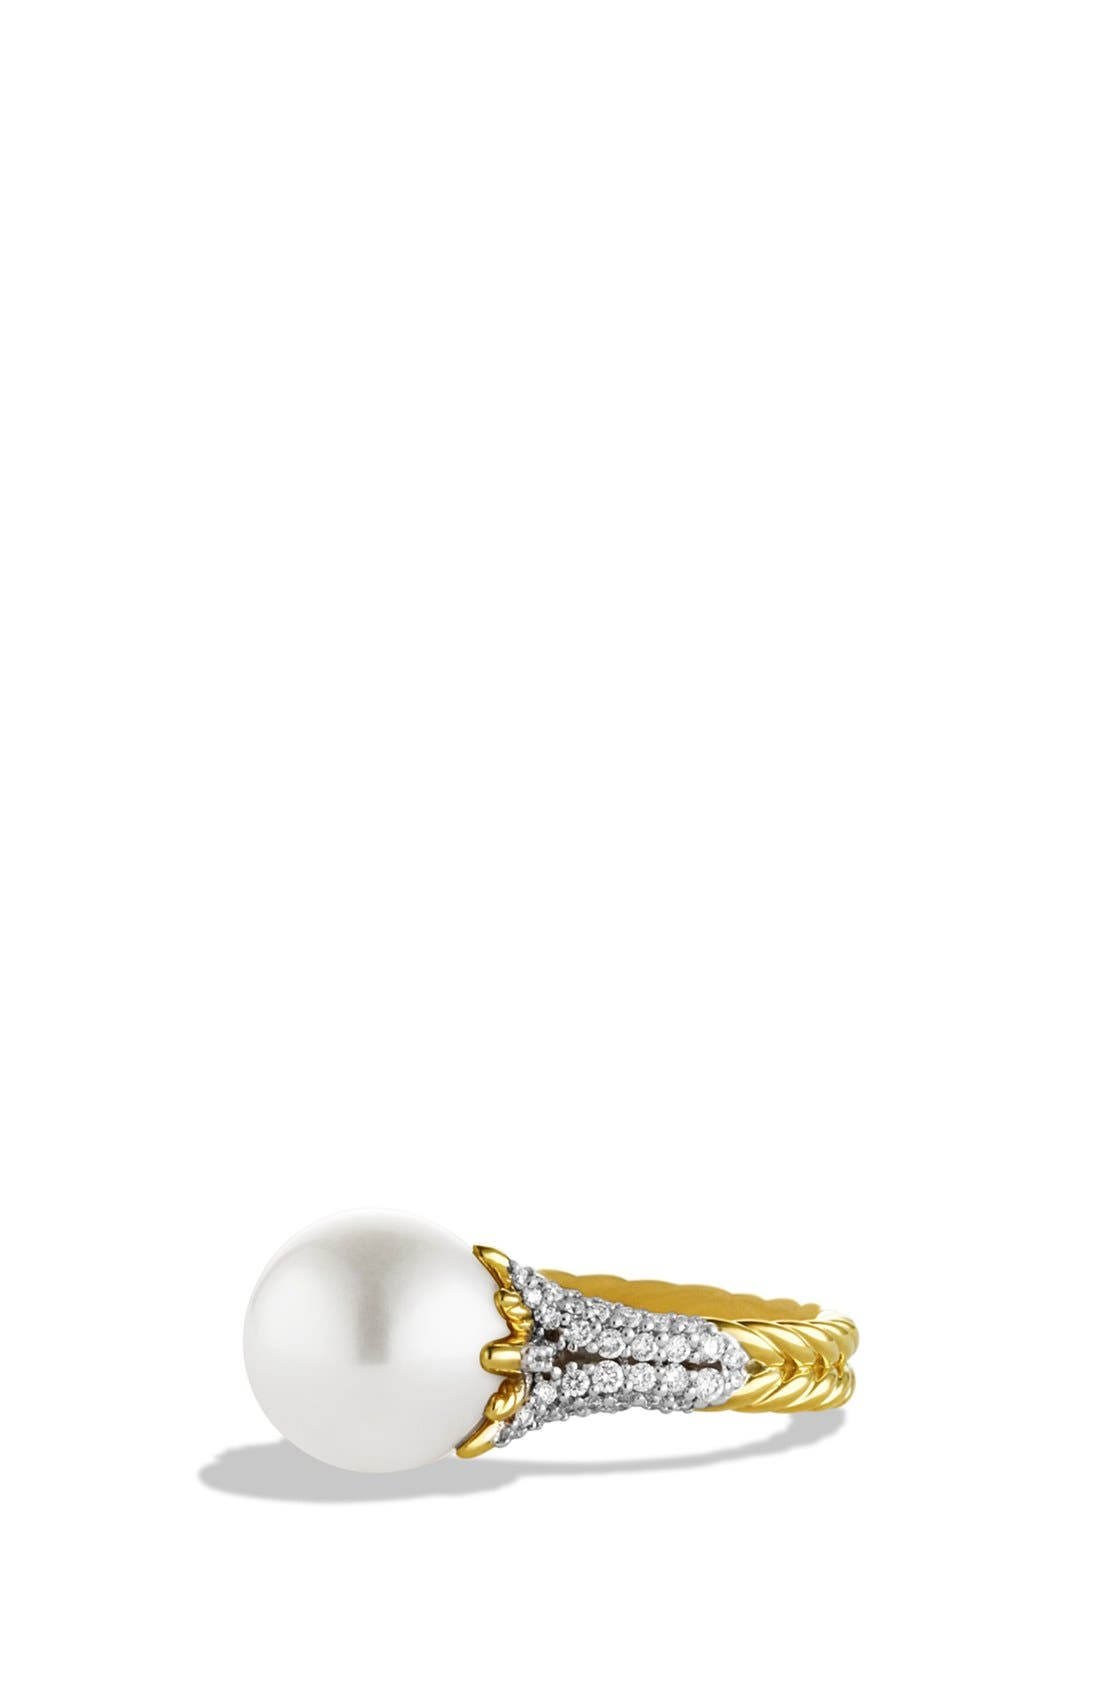 DAVID YURMAN 'Starburst' Pearl Ring with Diamonds in